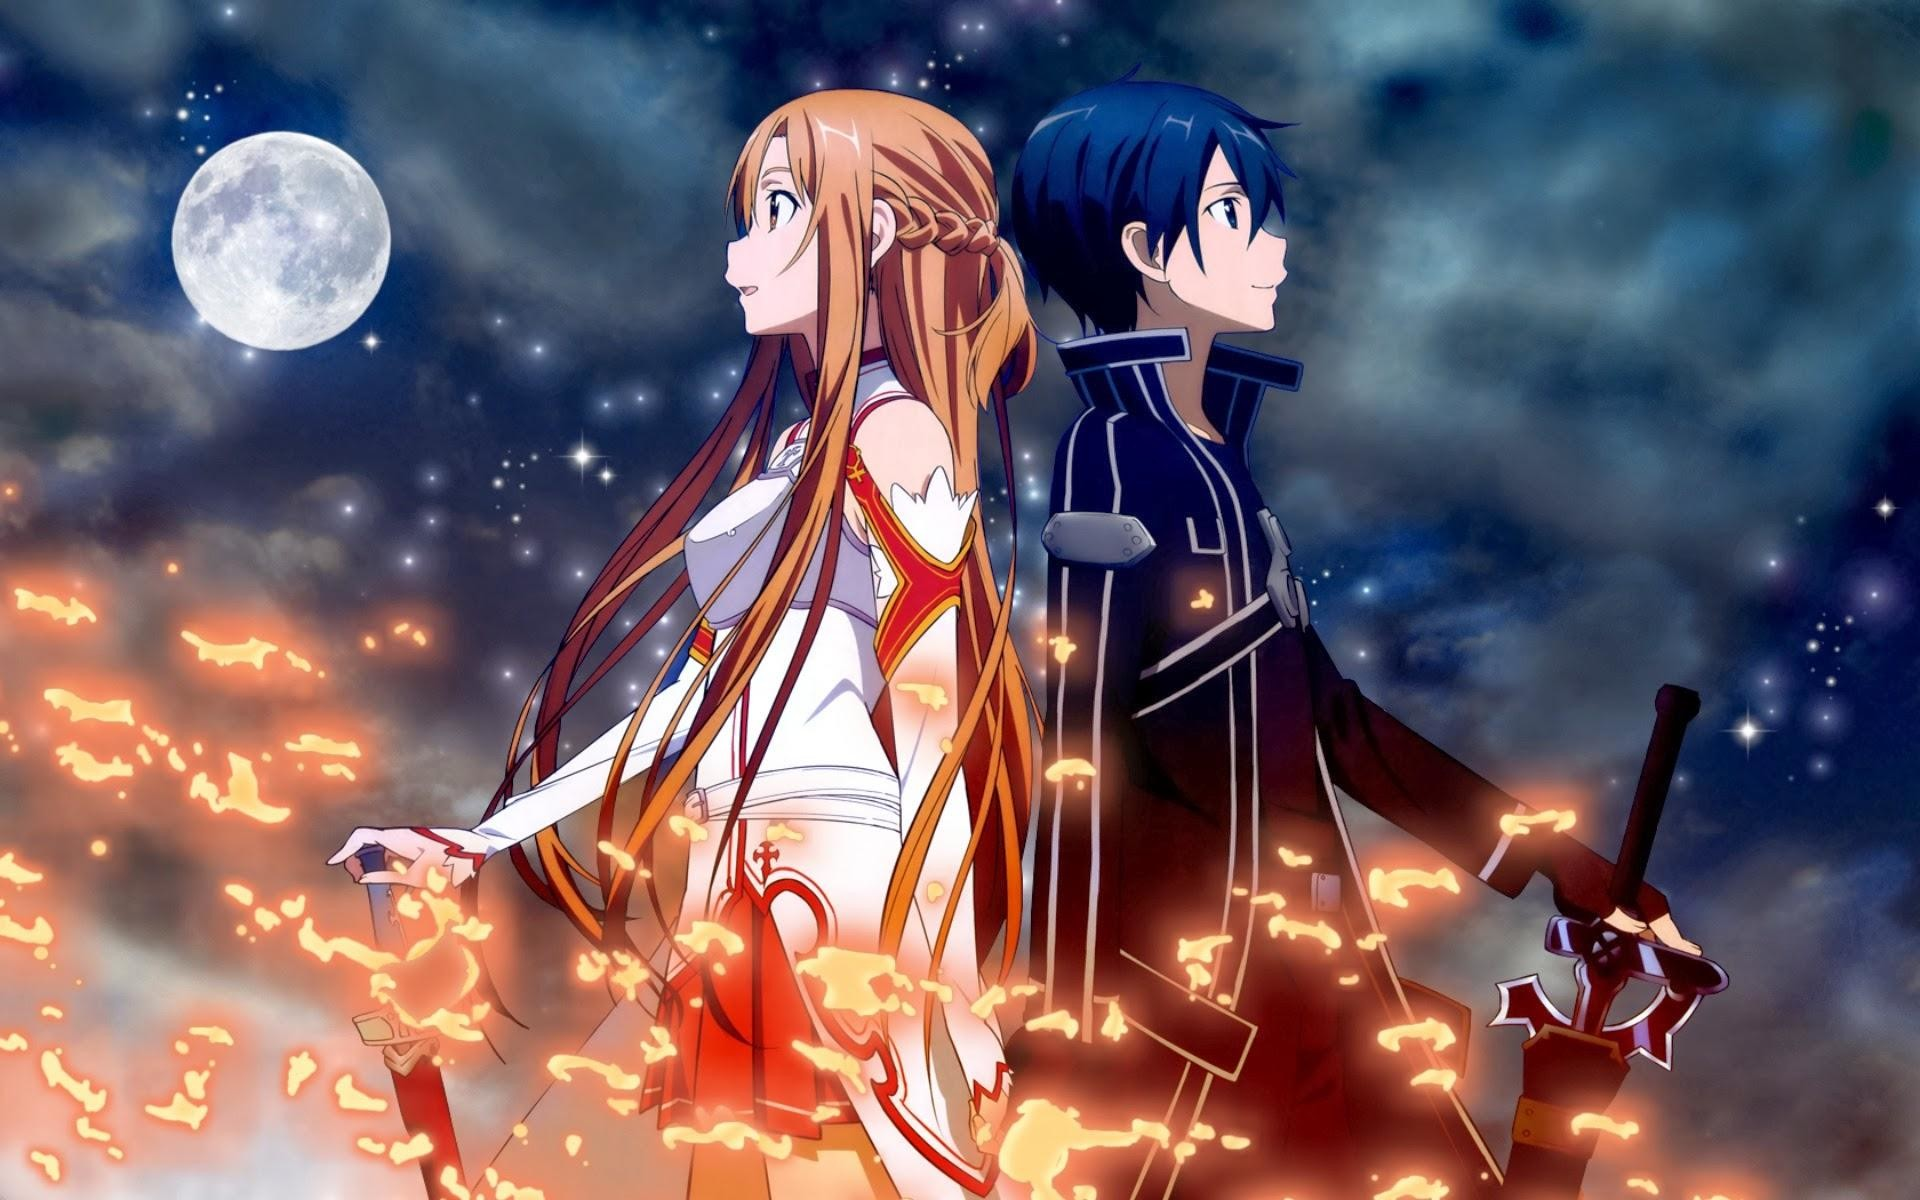 Sao Wallpapers (79+ images)